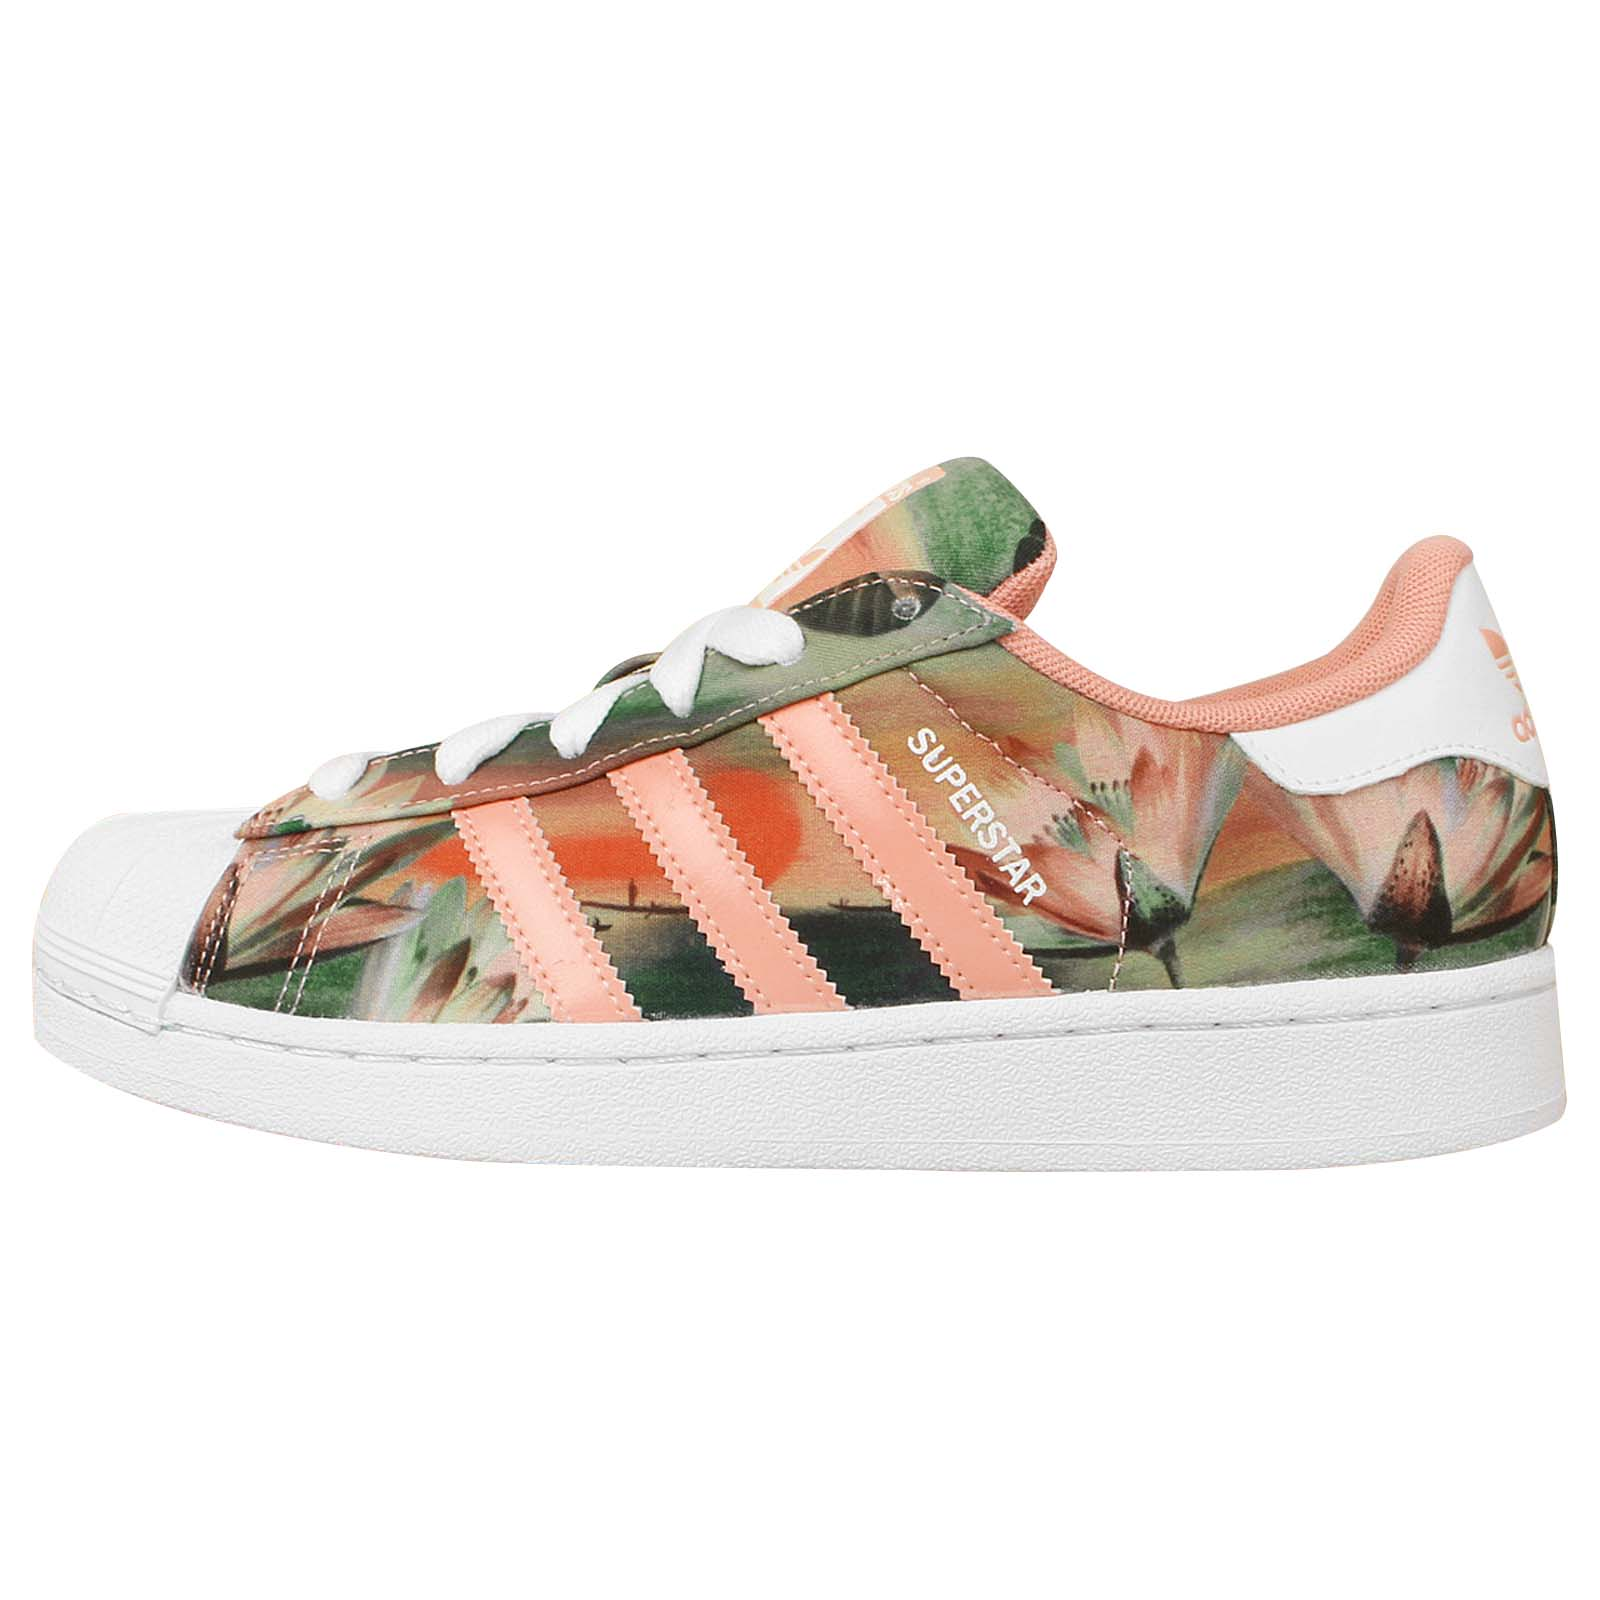 Adidas Originals Superstar W Farm Curso dAgua 2015 Womens ...